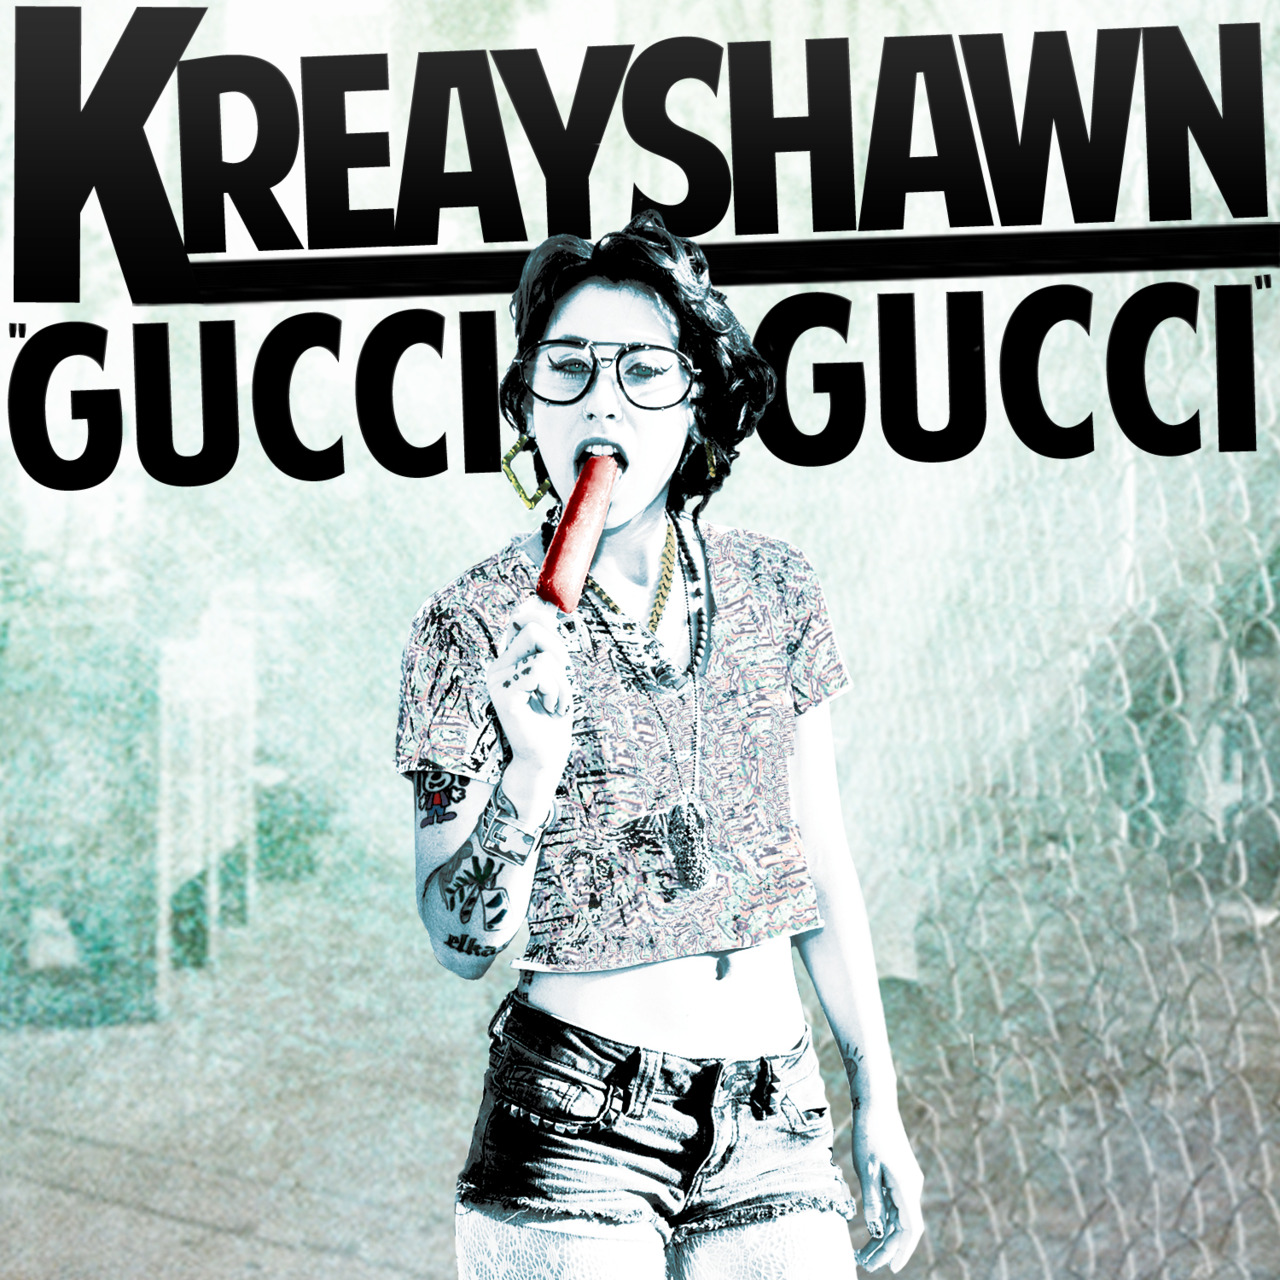 Kreayshawn - Gucci Gucci - Cover Artwork